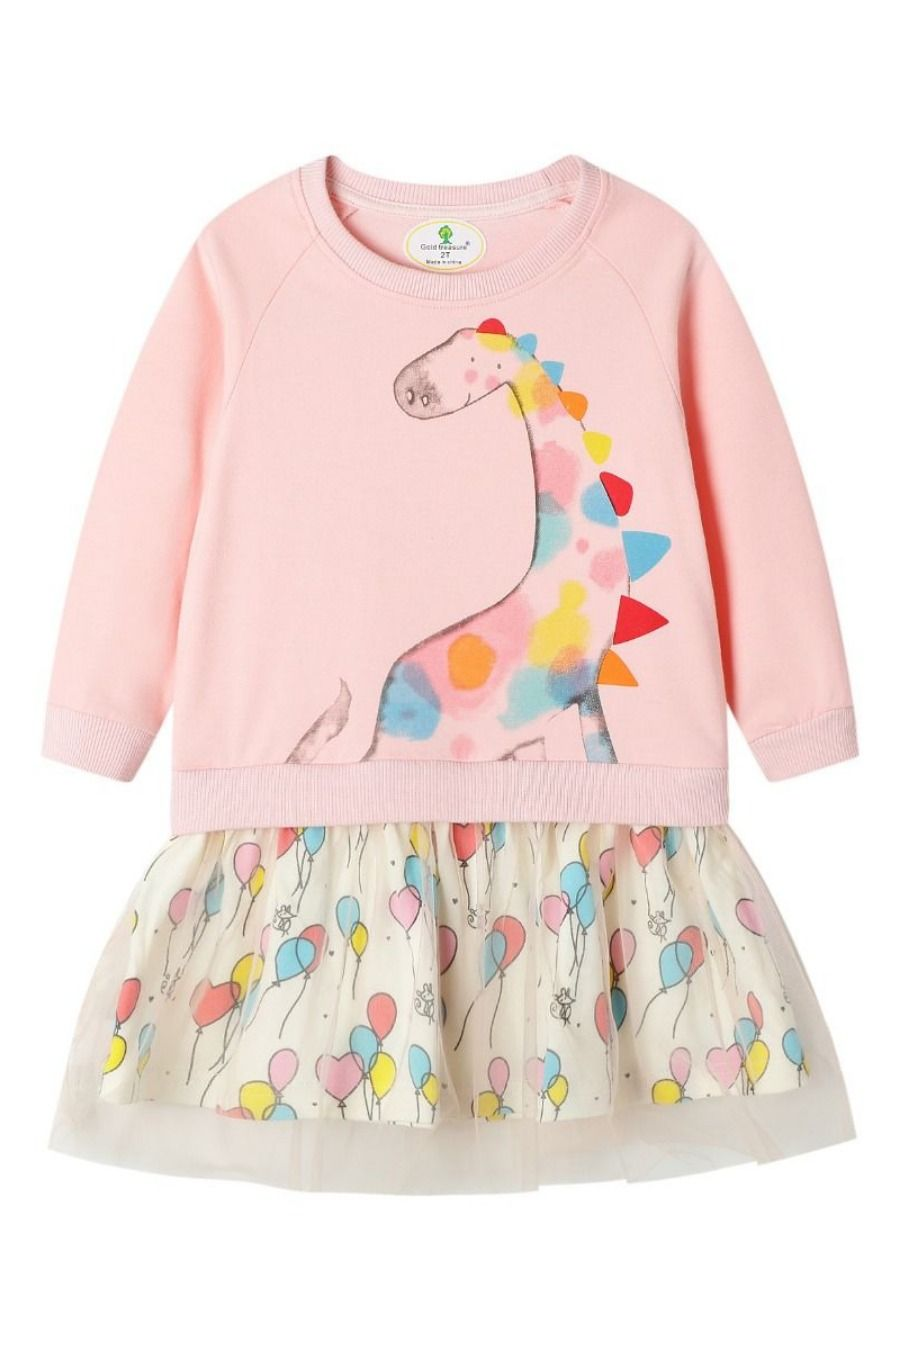 Toddler Baby Girl Clothes Dinosaur Unicorn Dress Cotton Long Sleeve Outfits